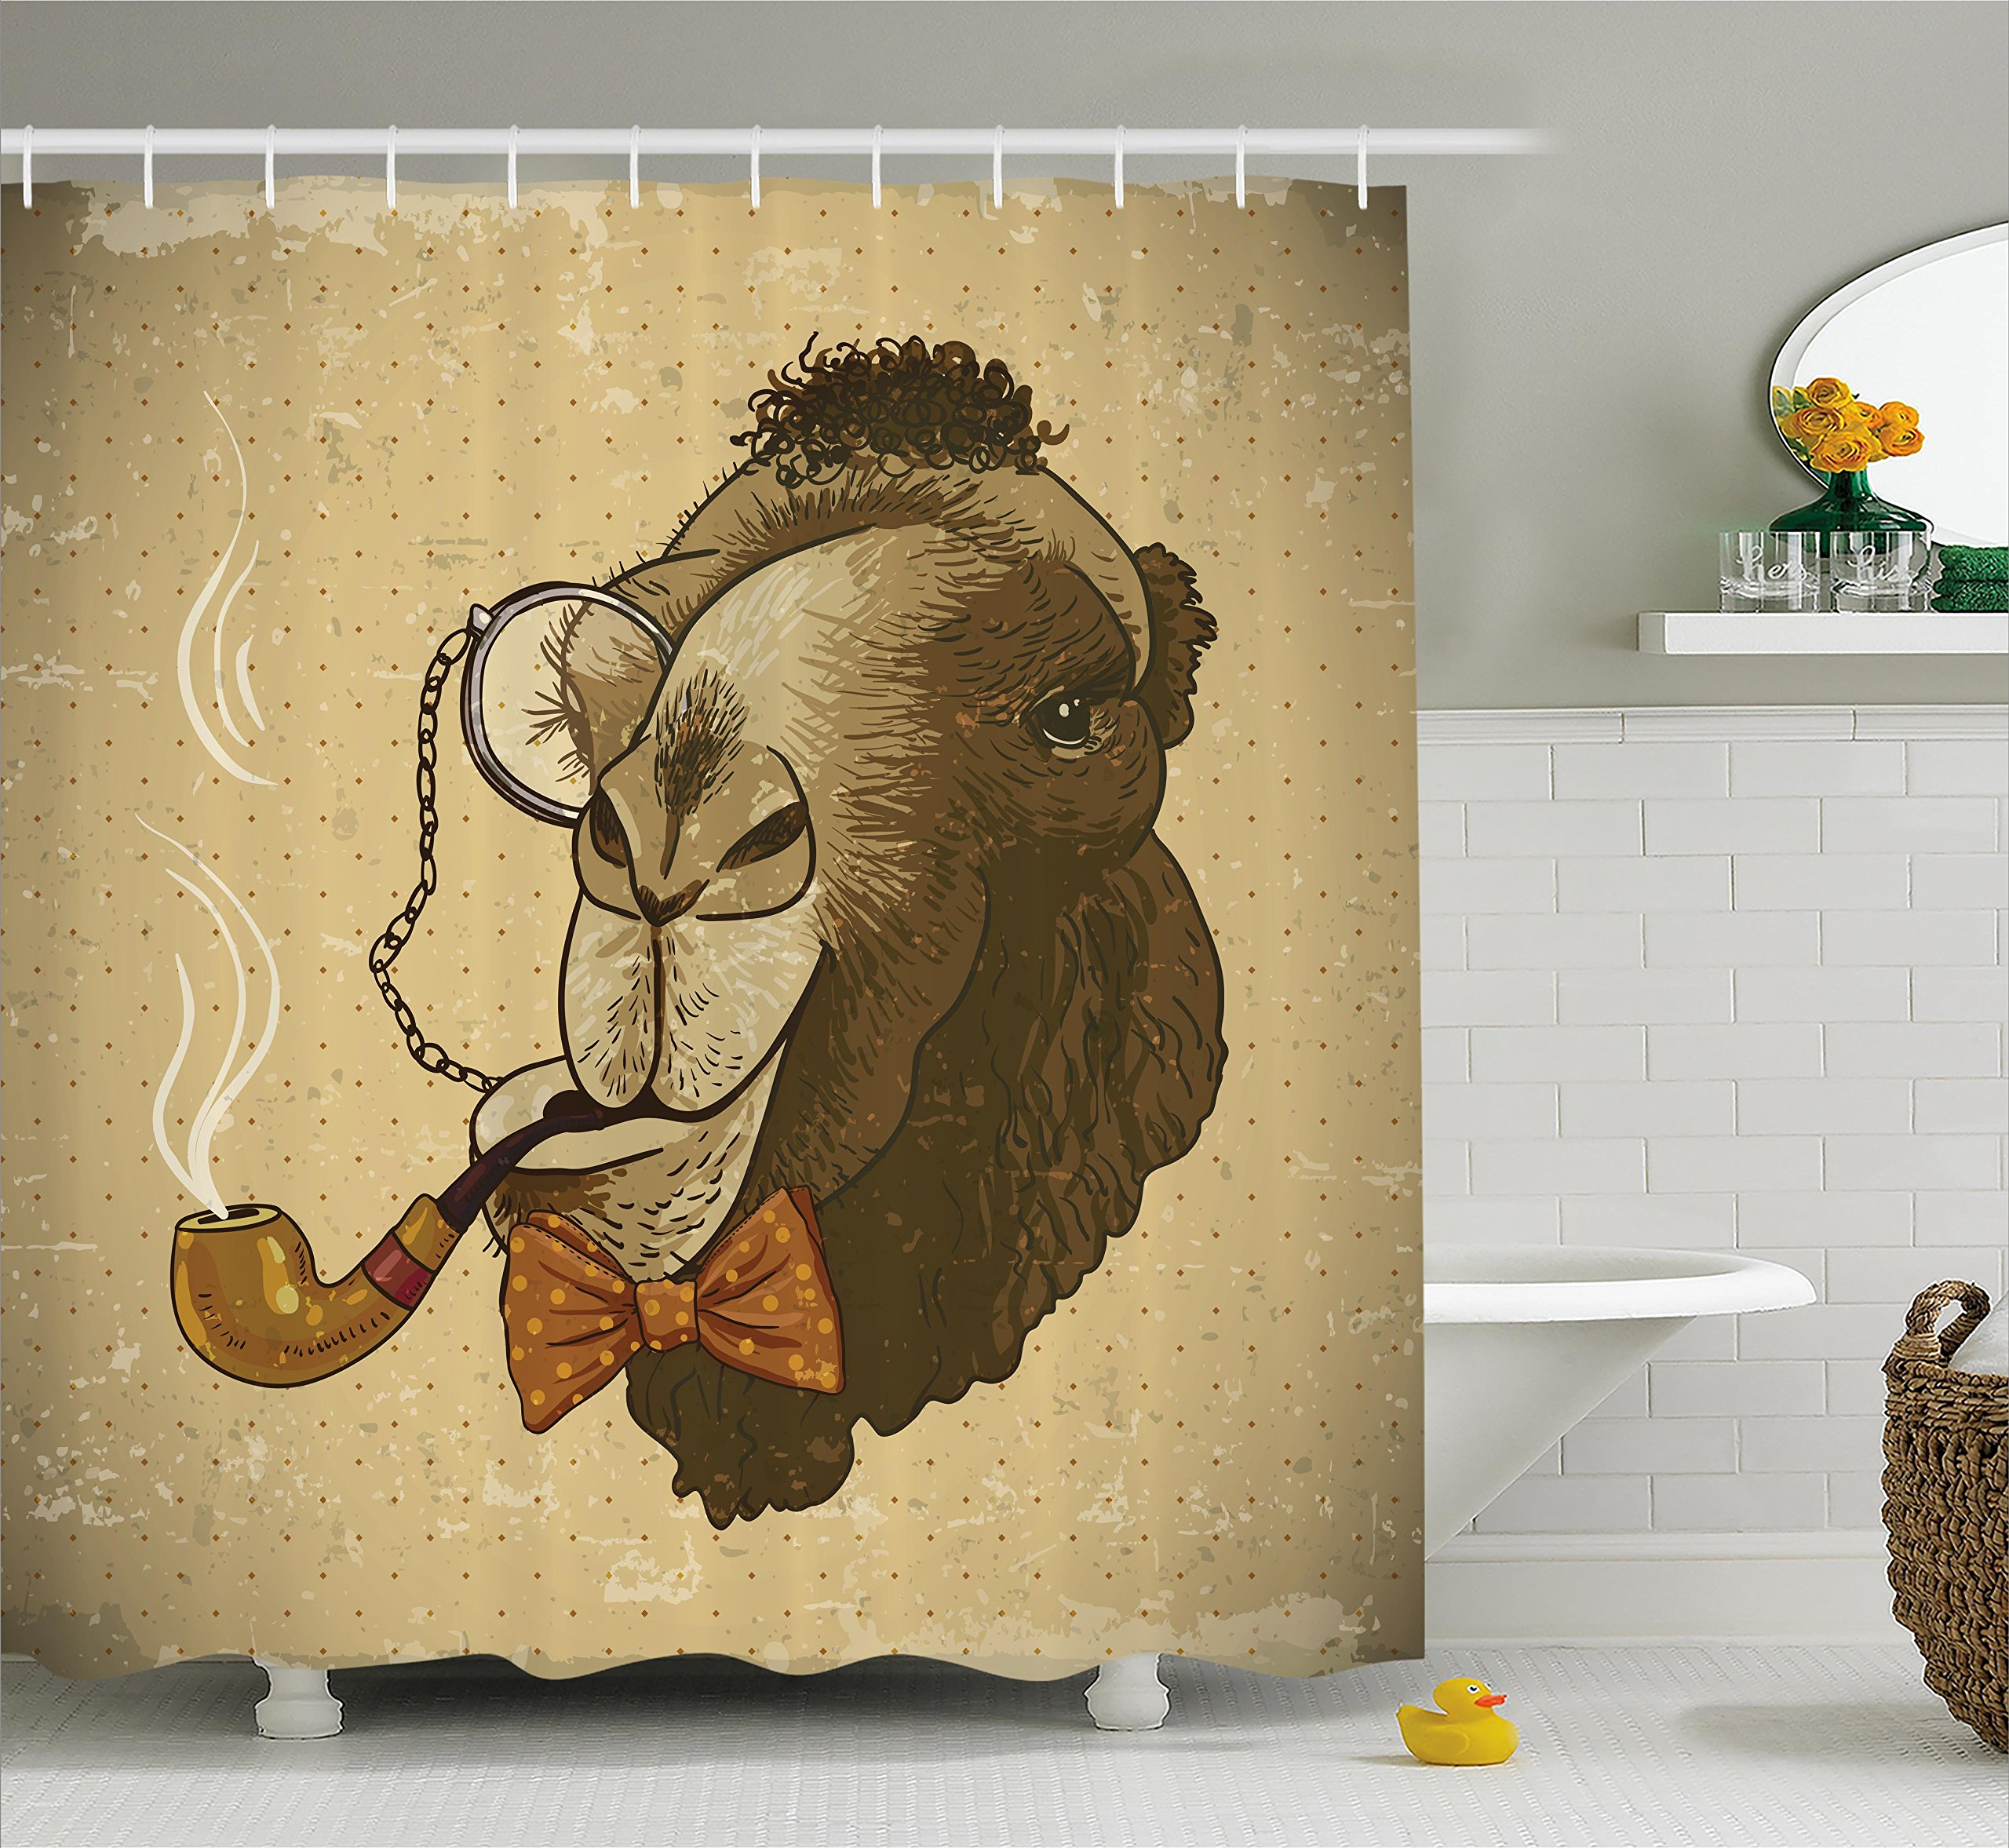 Ambesonne Animal Shower Curtain, Pop Art Stylized Hipster Camel with Pipe and Monocle Vintage Humor Fun Cool Graphic, Fabric Bathroom Decor Set with Hooks, 75 inches Long, Brown Tan